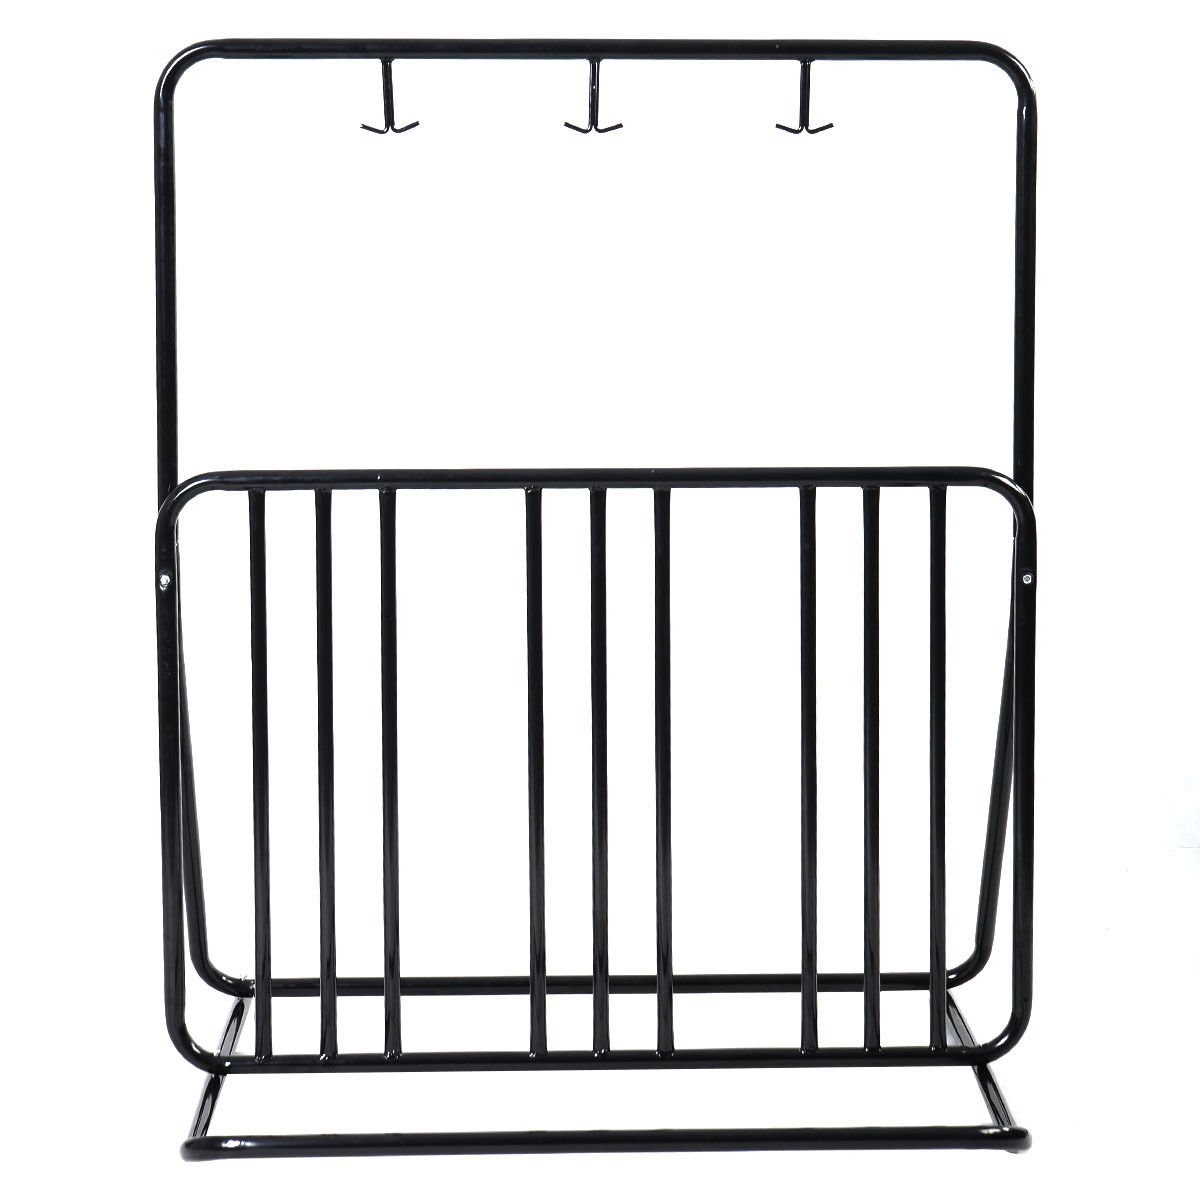 当季大流行 Goplusつ Bicycle Parking Storage Rack Black 1-6 Goplusつ B0162U2QLM Bikes Steel Park Stand 2/3/4/5 Black by Goplus B0162U2QLM, コクブンジマチ:fa9d7e0e --- irlandskayaliteratura.org